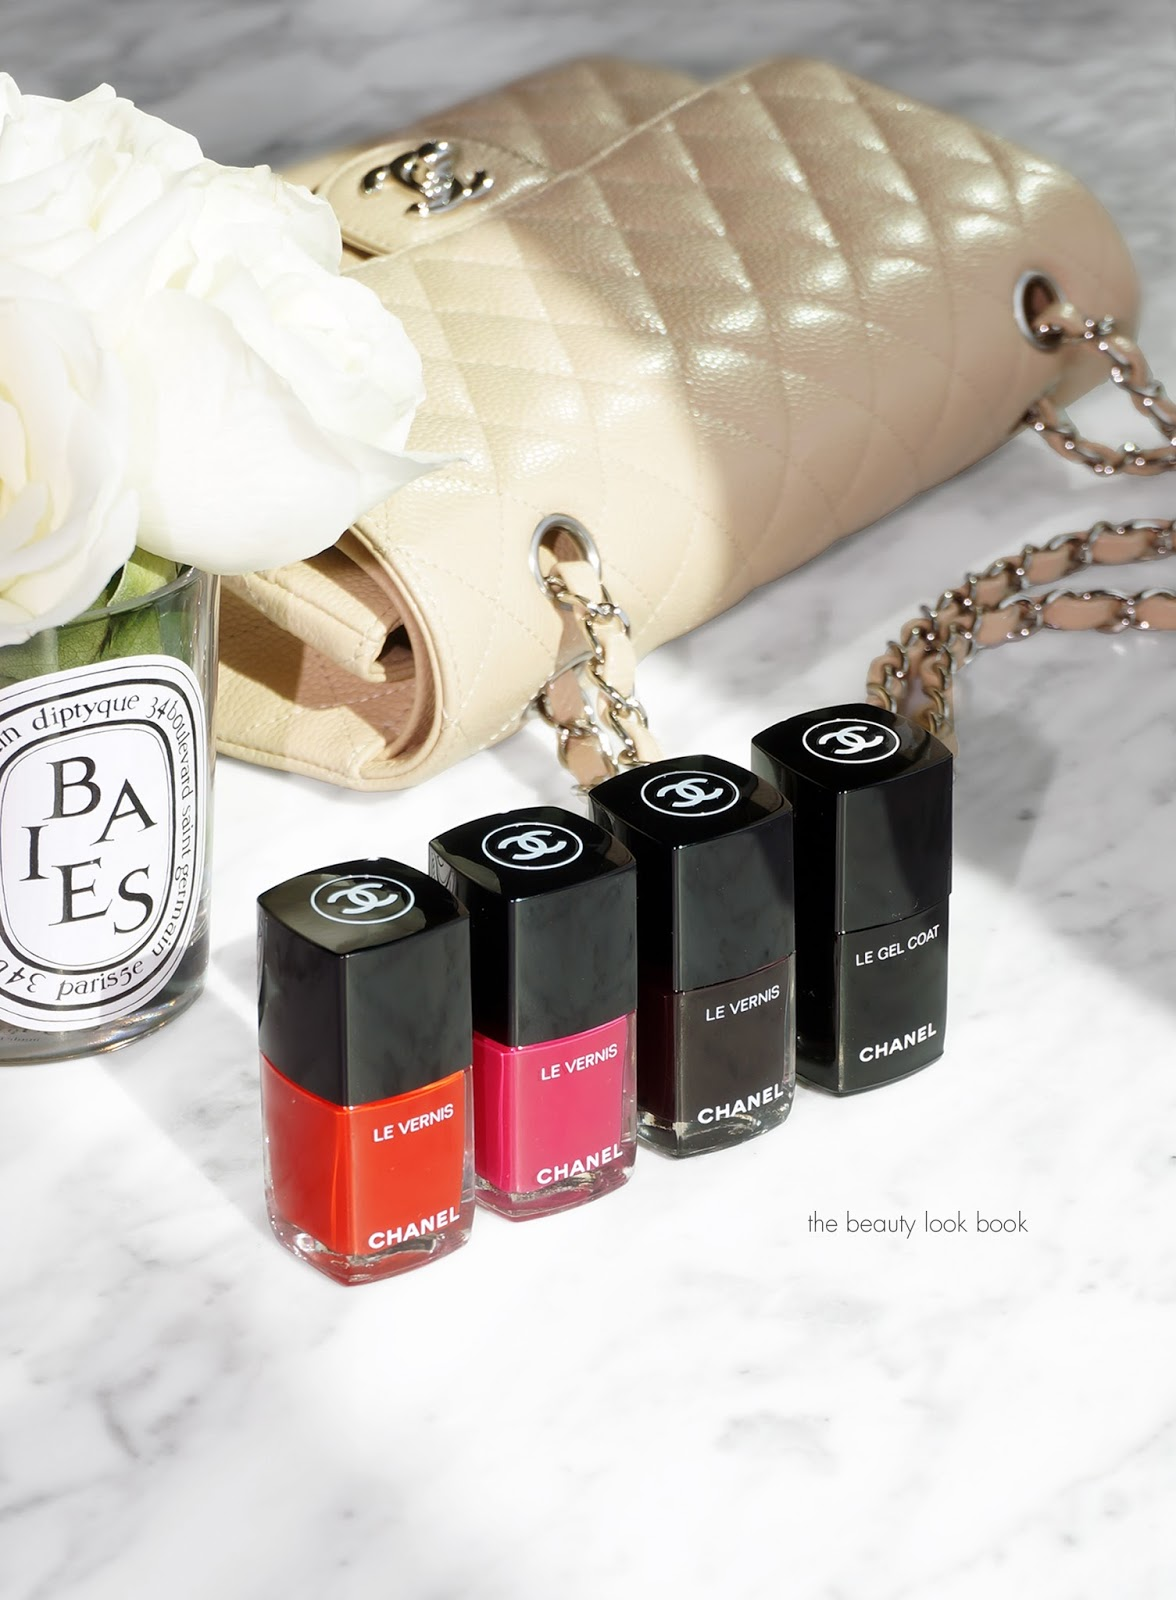 Chanel Le Vernis Longwear Nail Color and Le Gel Coat Longwear Top ...